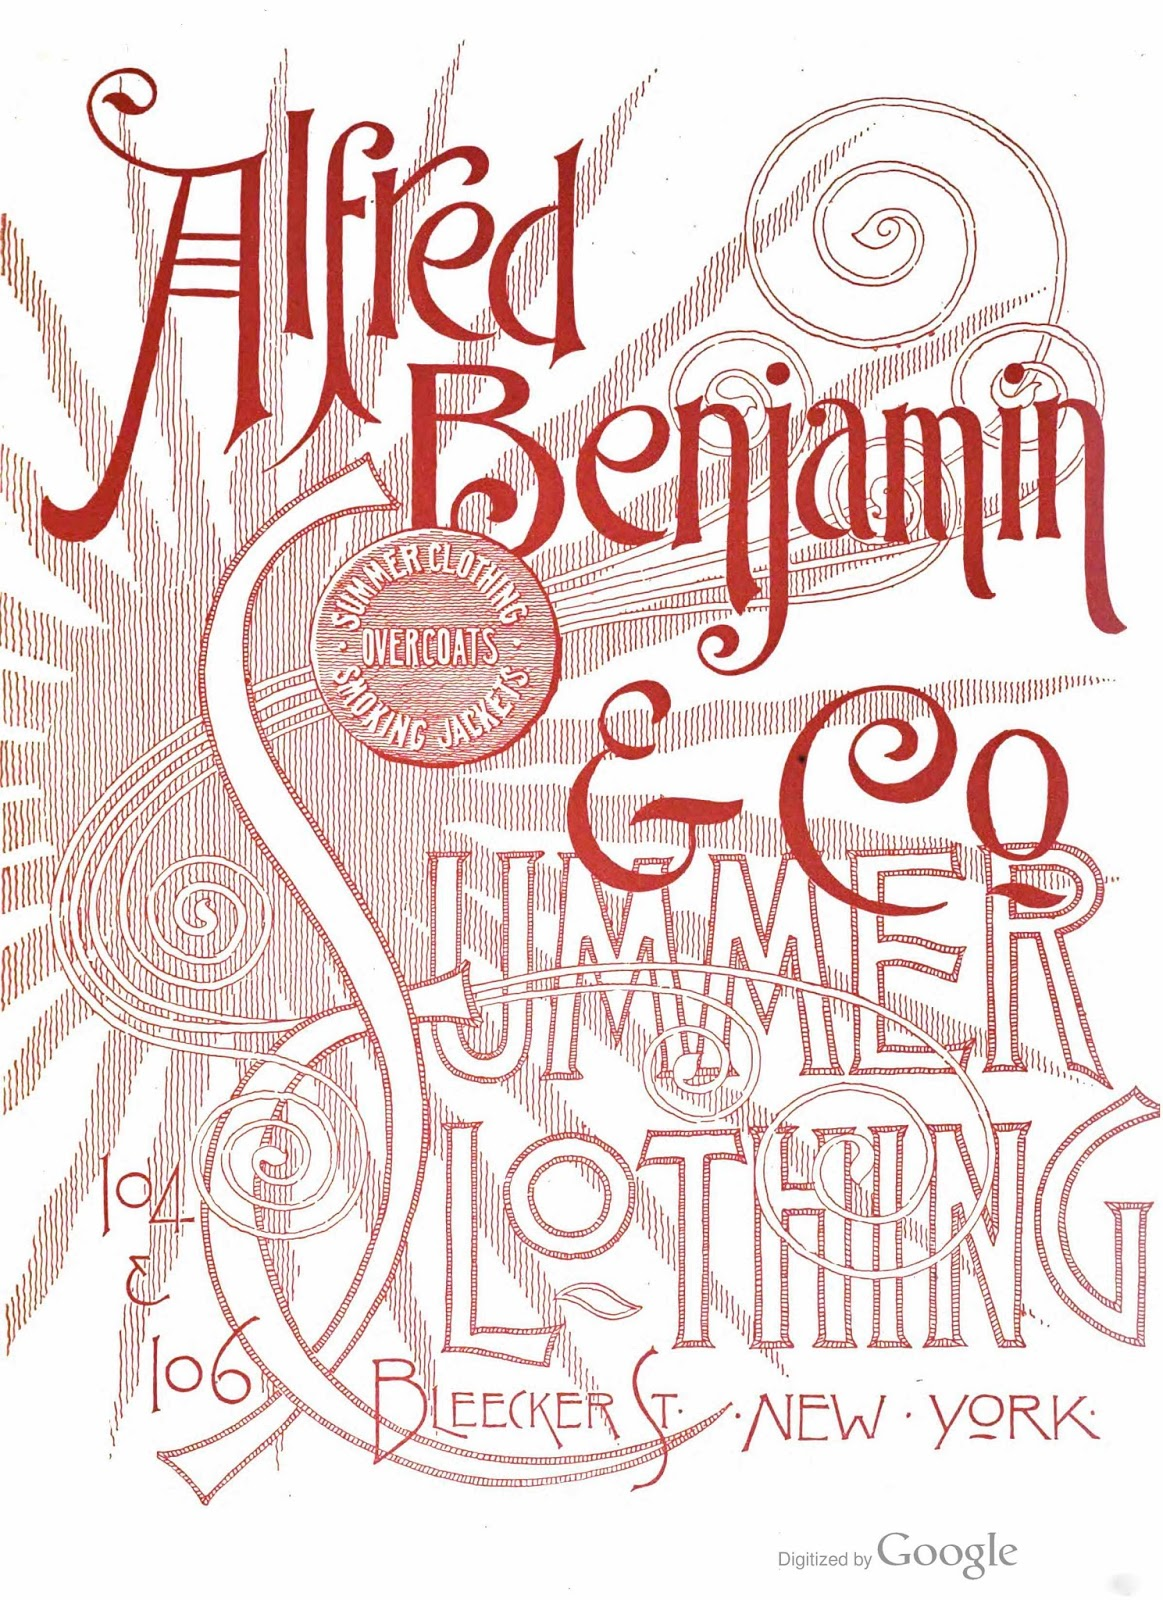 Tenth Letter of the Alphabet: Lettering: Alfred Benjamin & Co.